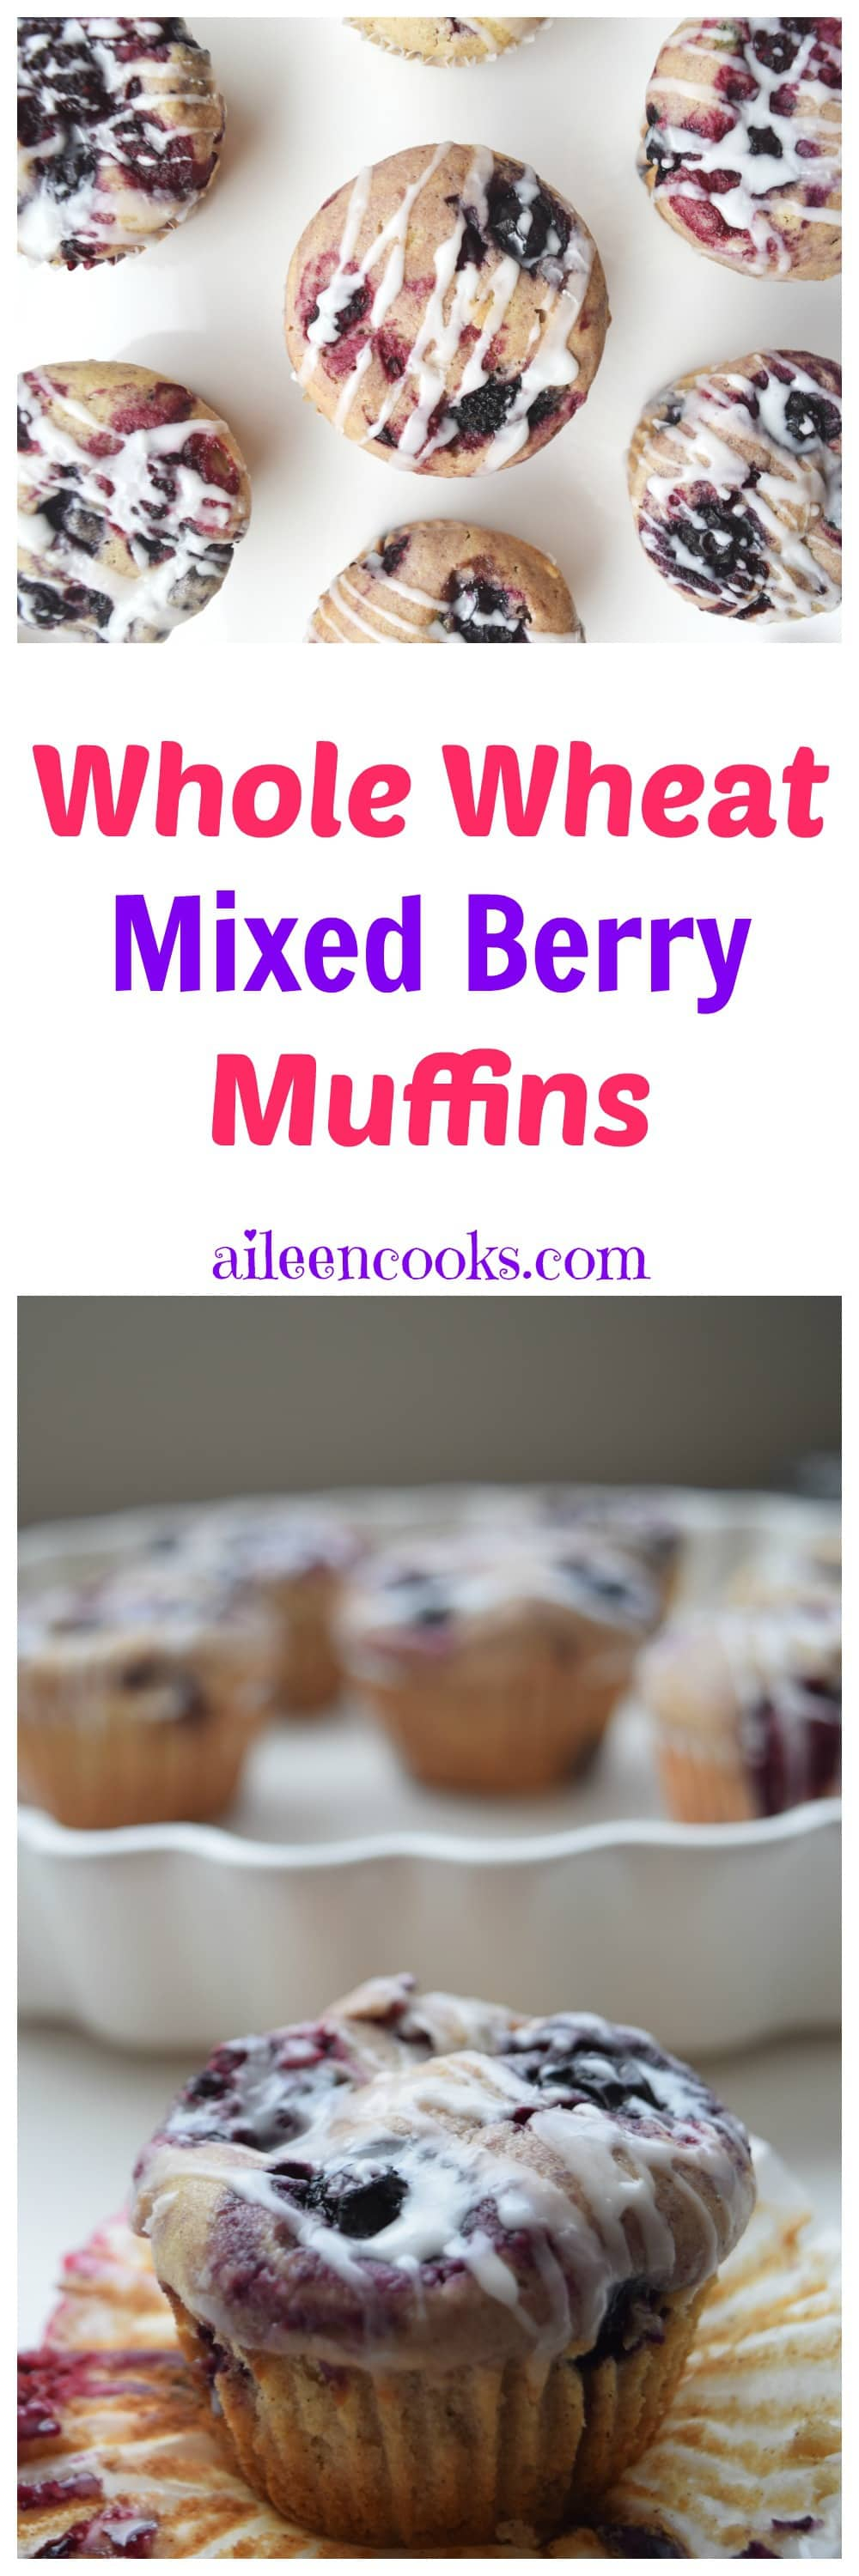 Glazed Whole Wheat Mixed Berry Muffins - Aileen Cooks